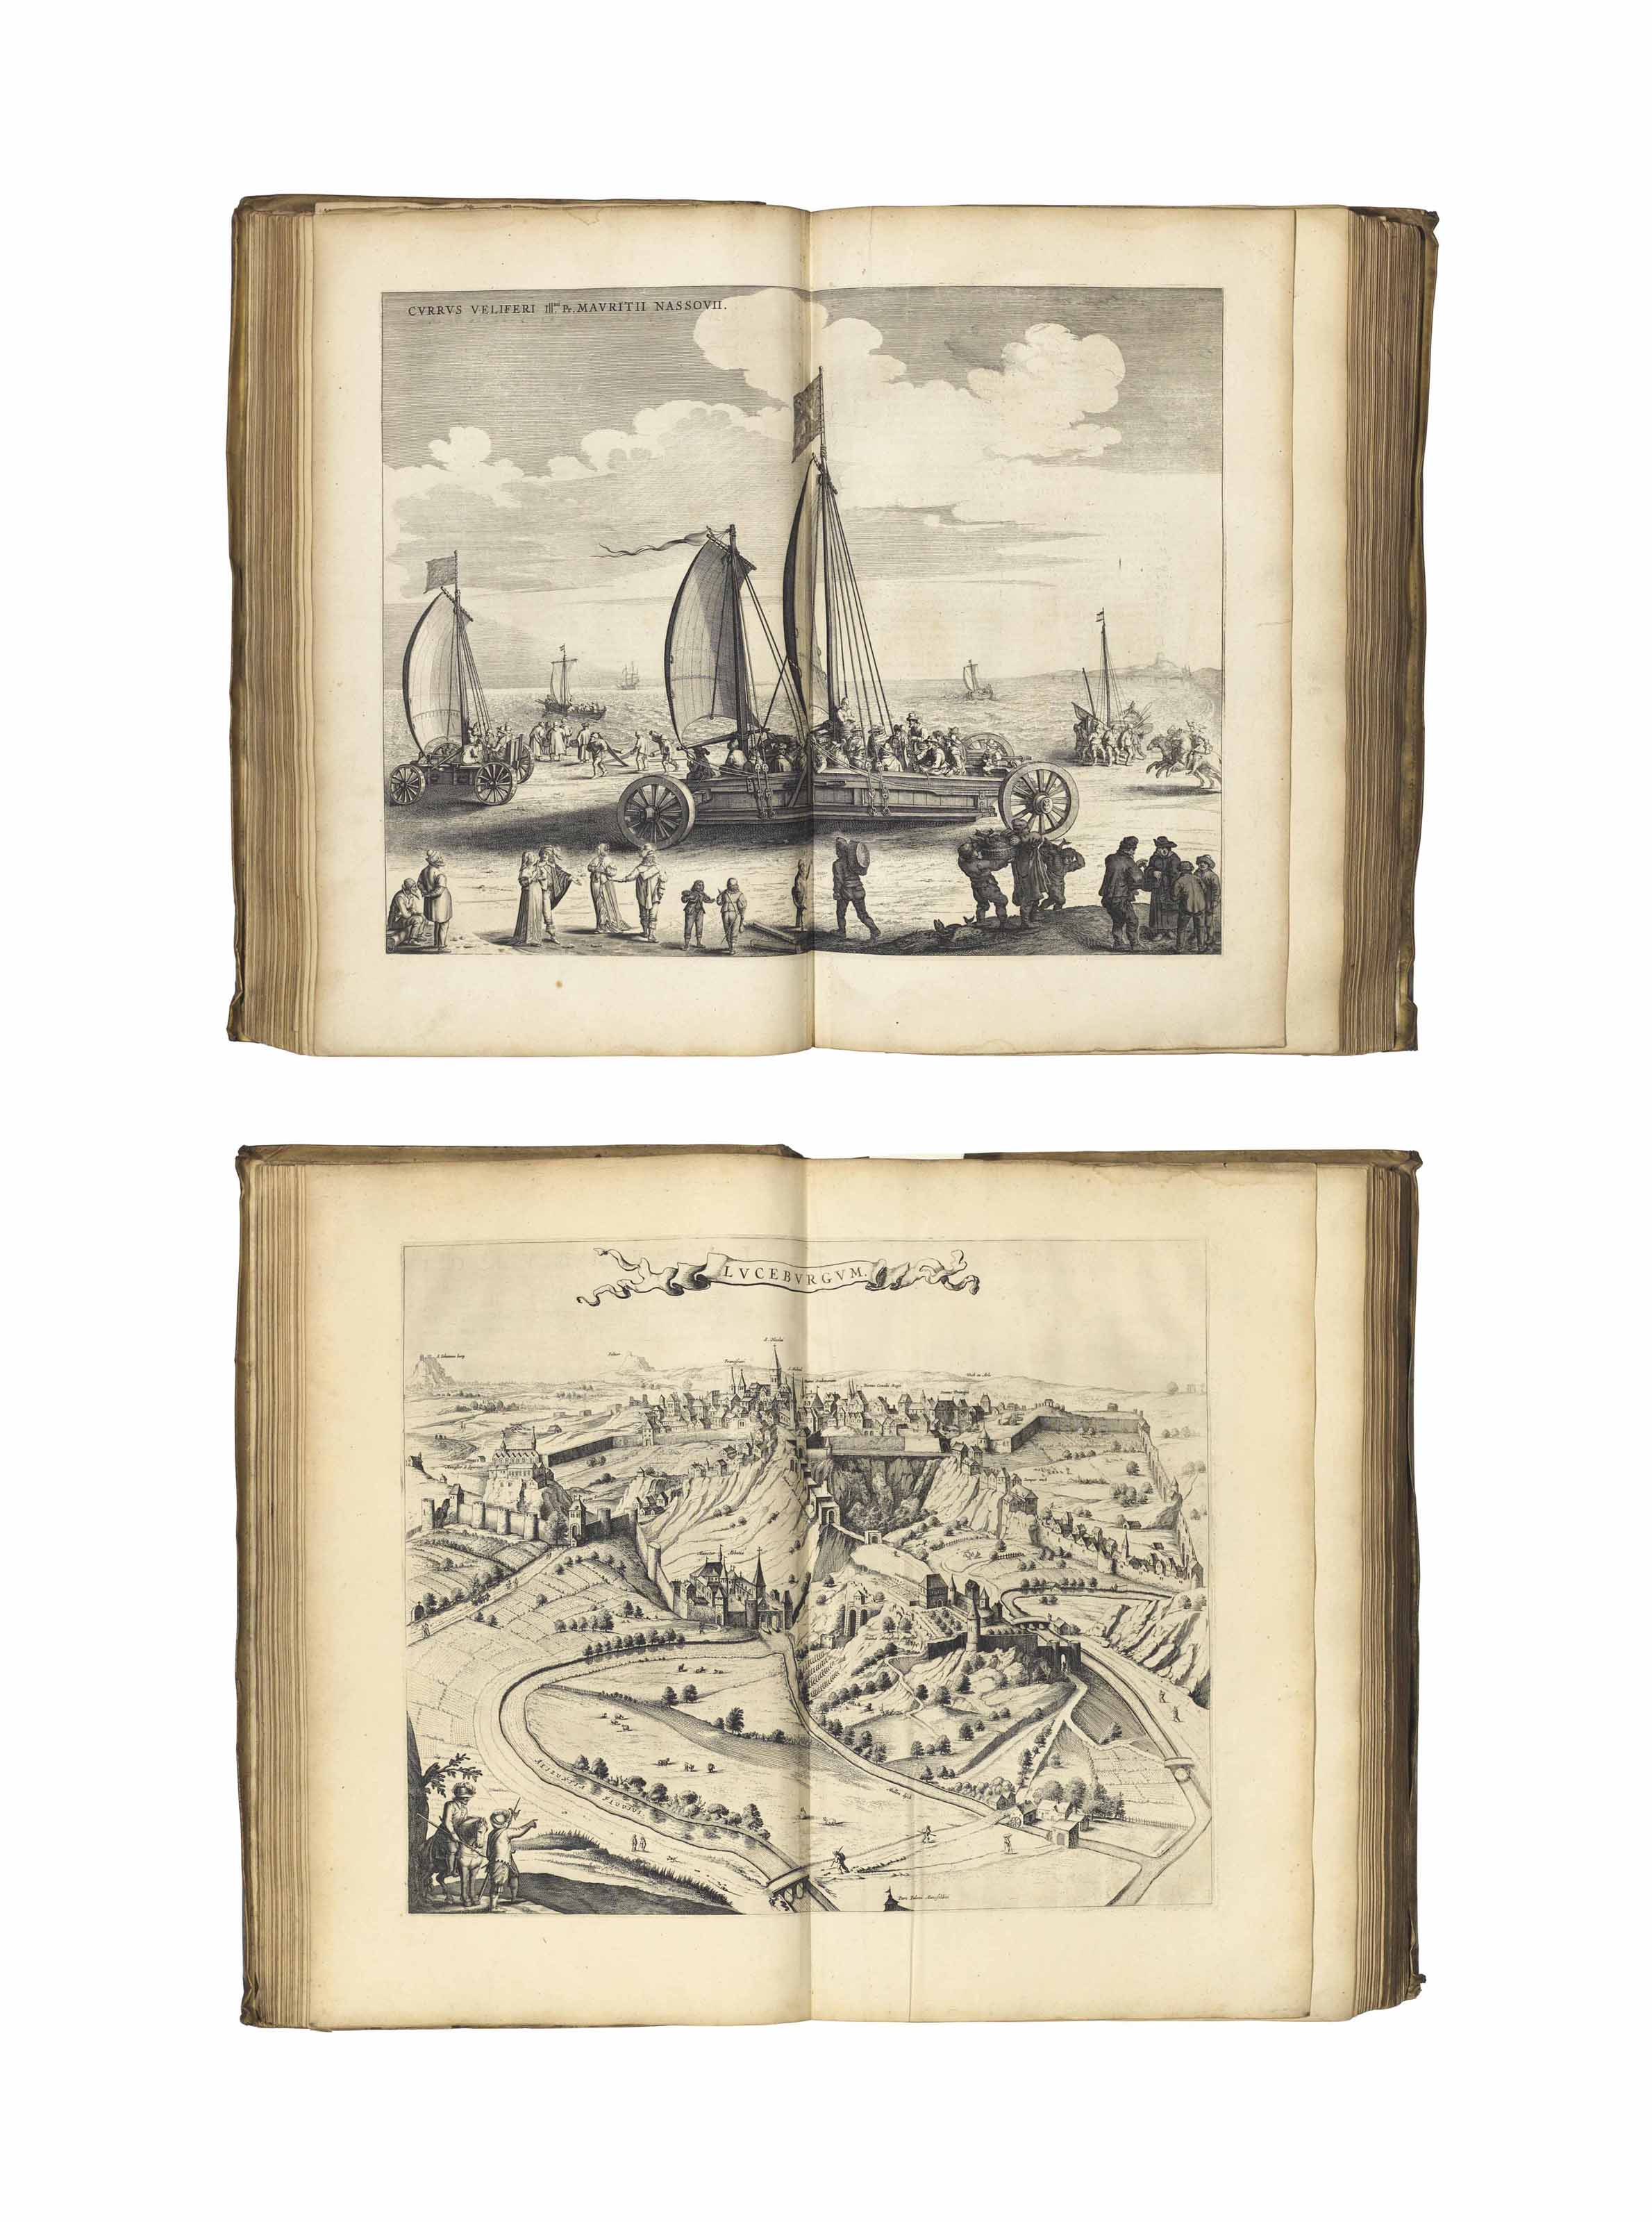 BLAEU, Joan (1596-1673). Novum ac Magnum Theatrum Urbiium Belgicae Foederate [-- Regiae]. Amsterdam: Johannes Blaeu [1652]. 2 volumes, 2° (552 x 356mm). Text in Latin. Engraved armorial titles with letterpress labels, 225 engraved maps, views and plans, one of these folding, and the majority double-page. (Some maps with tear at the fold not reaching the image, occasional faint mostly marginal dampstain, some light creasing, short marginal wormtrack in a few text leaves, light marginal soiling.) Contemporary vellum panelled in gilt with central lozenge (sides bowing, one joint starting at the head, lacking cloth ties, some soiling, volume 2 without the rear free endpaper).